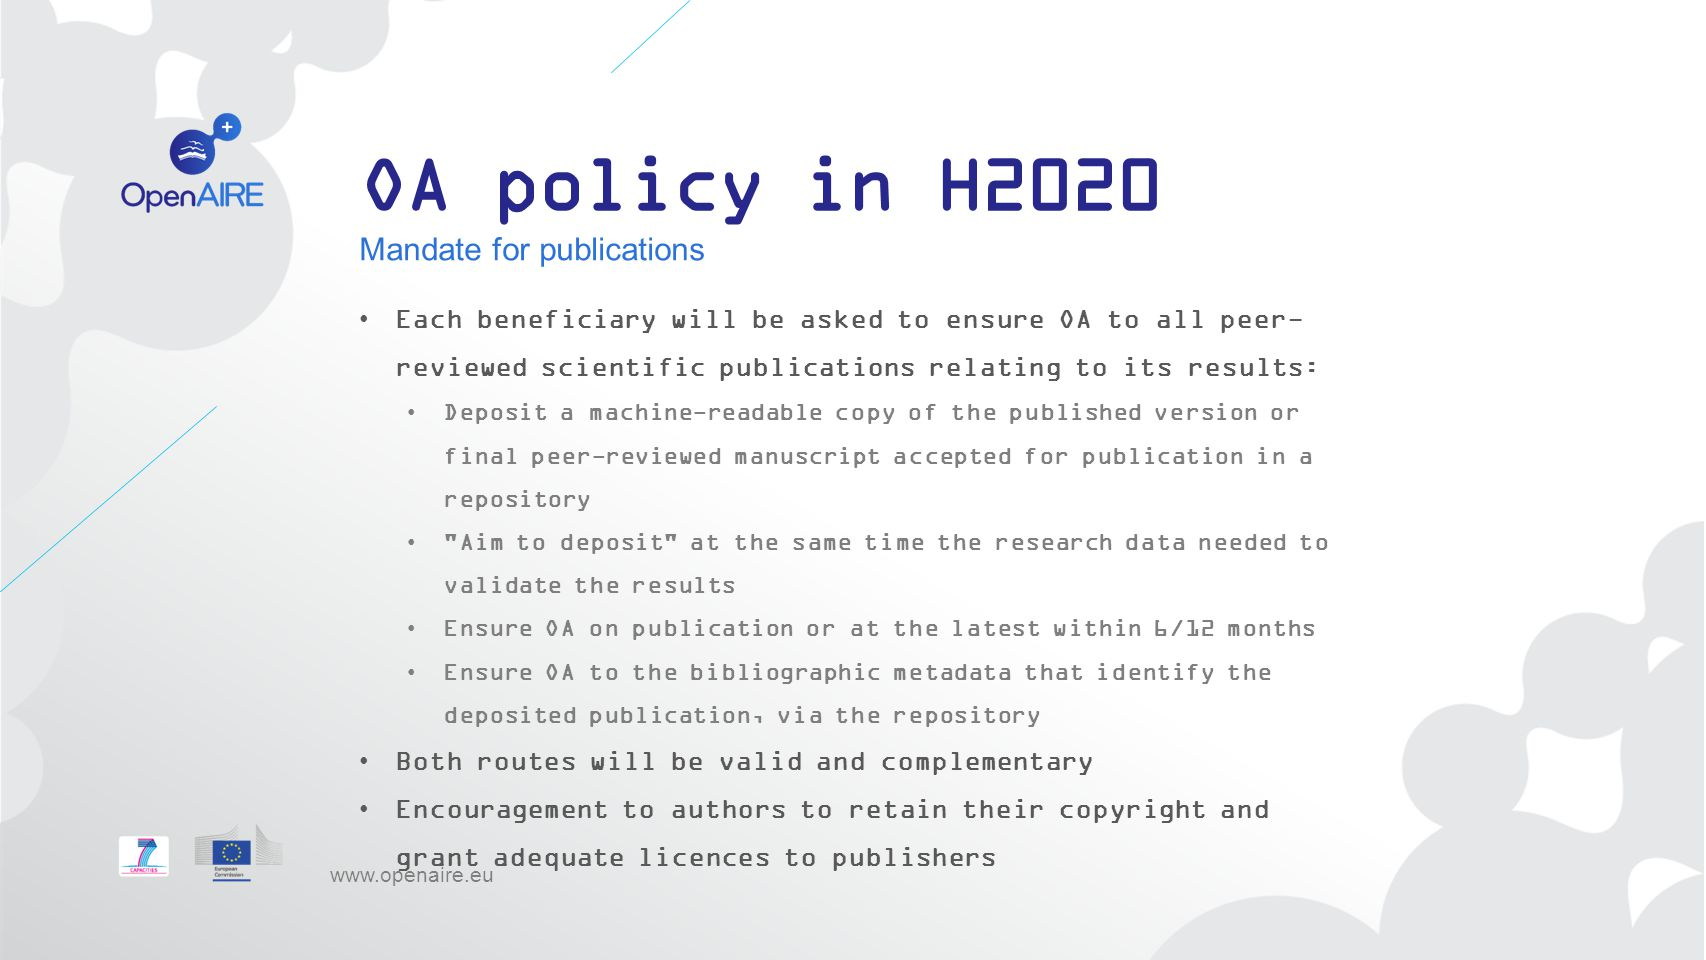 OA policy in H2020 Mandate for publications